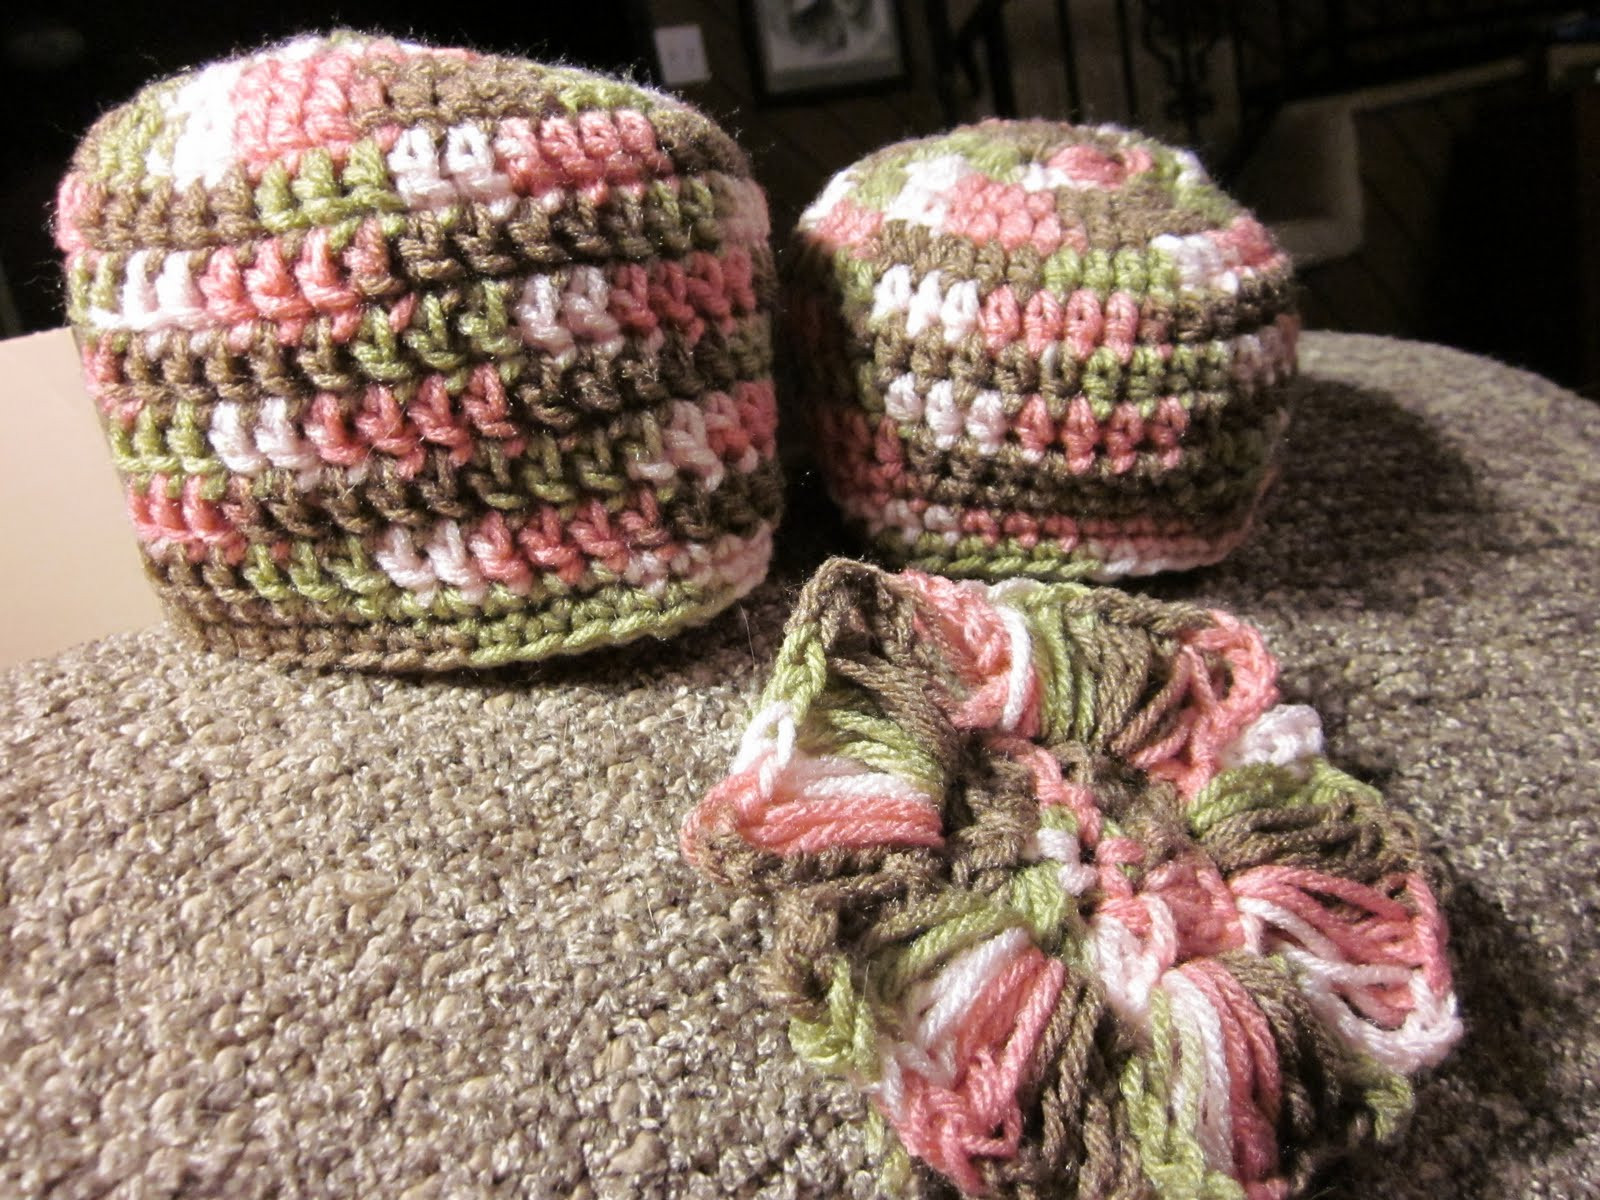 Best Of Lise S Blog Cutie Pink Camo Yarn Pink Camouflage Yarn Of Charming 42 Pics Pink Camouflage Yarn